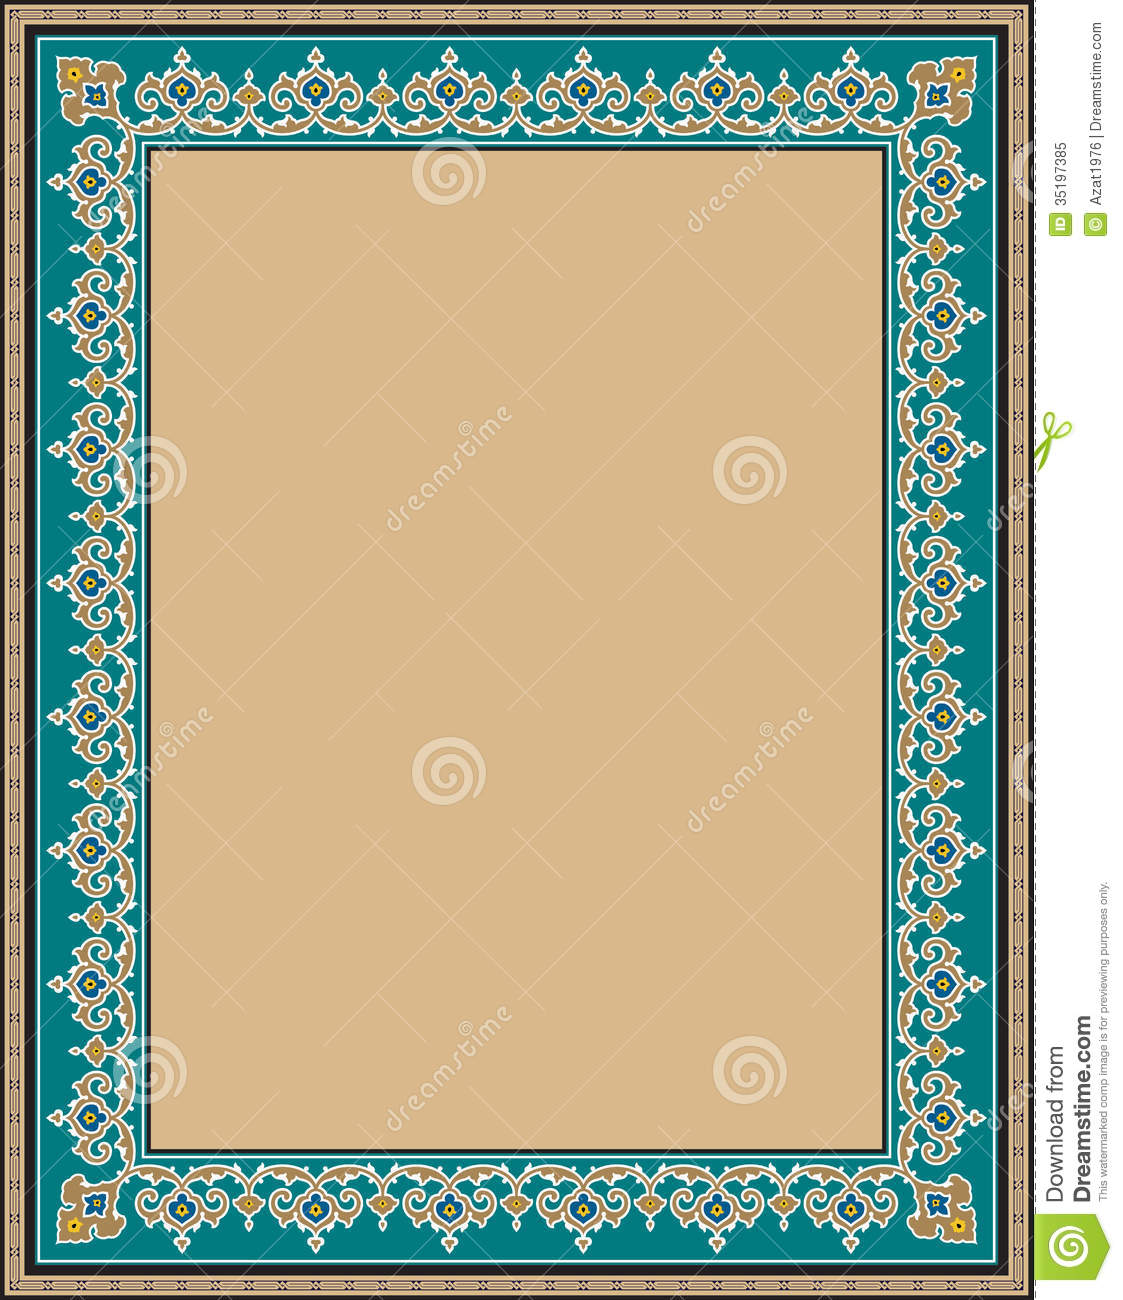 Abadan Arabic Frame Eight Royalty Free Stock Photo - Image: 35197385